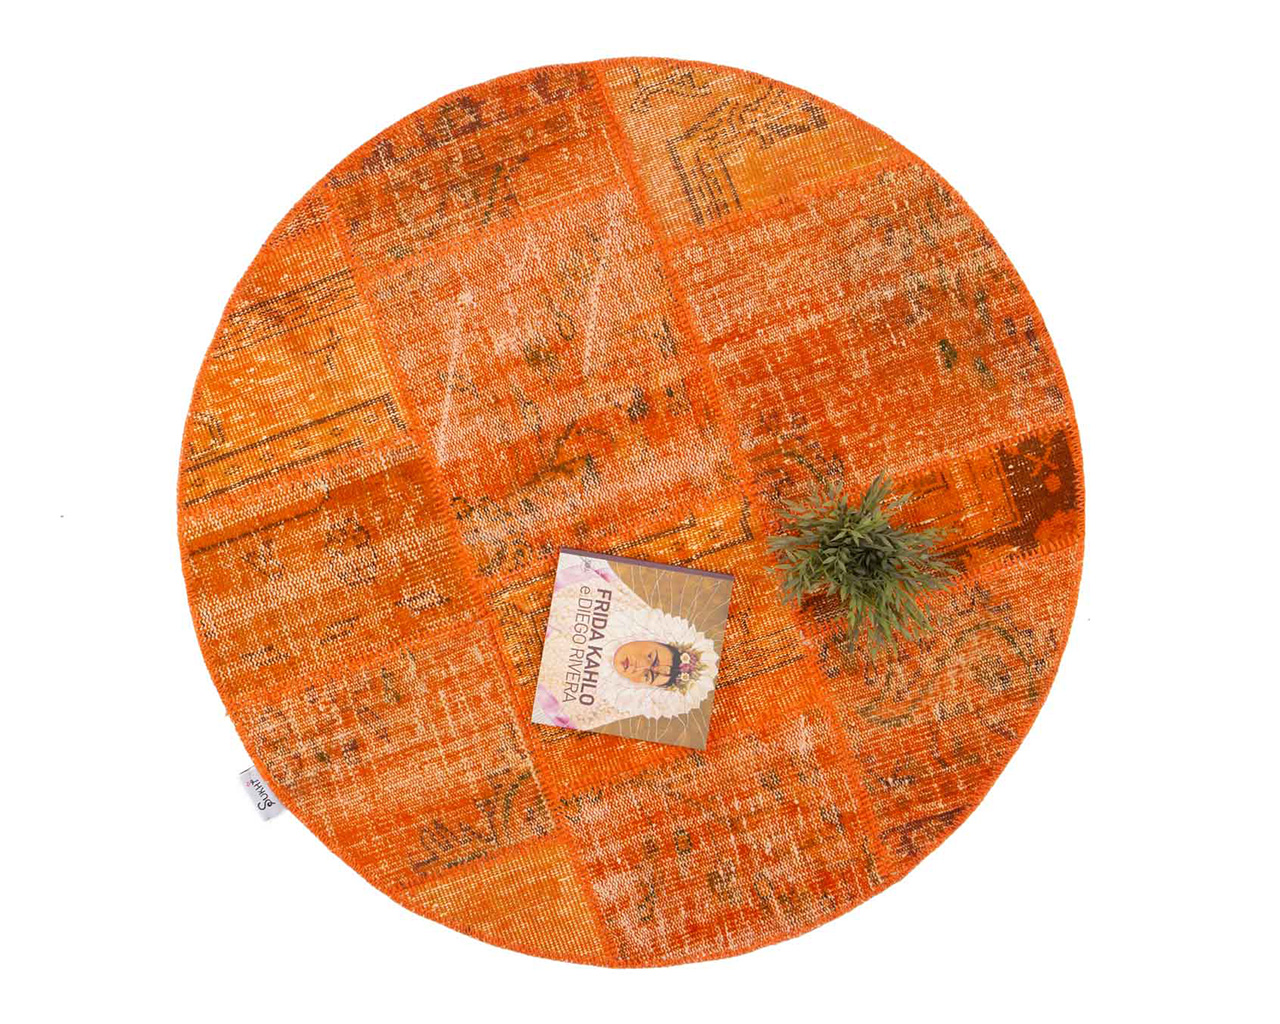 maison decor modeliste la zun tapis orange